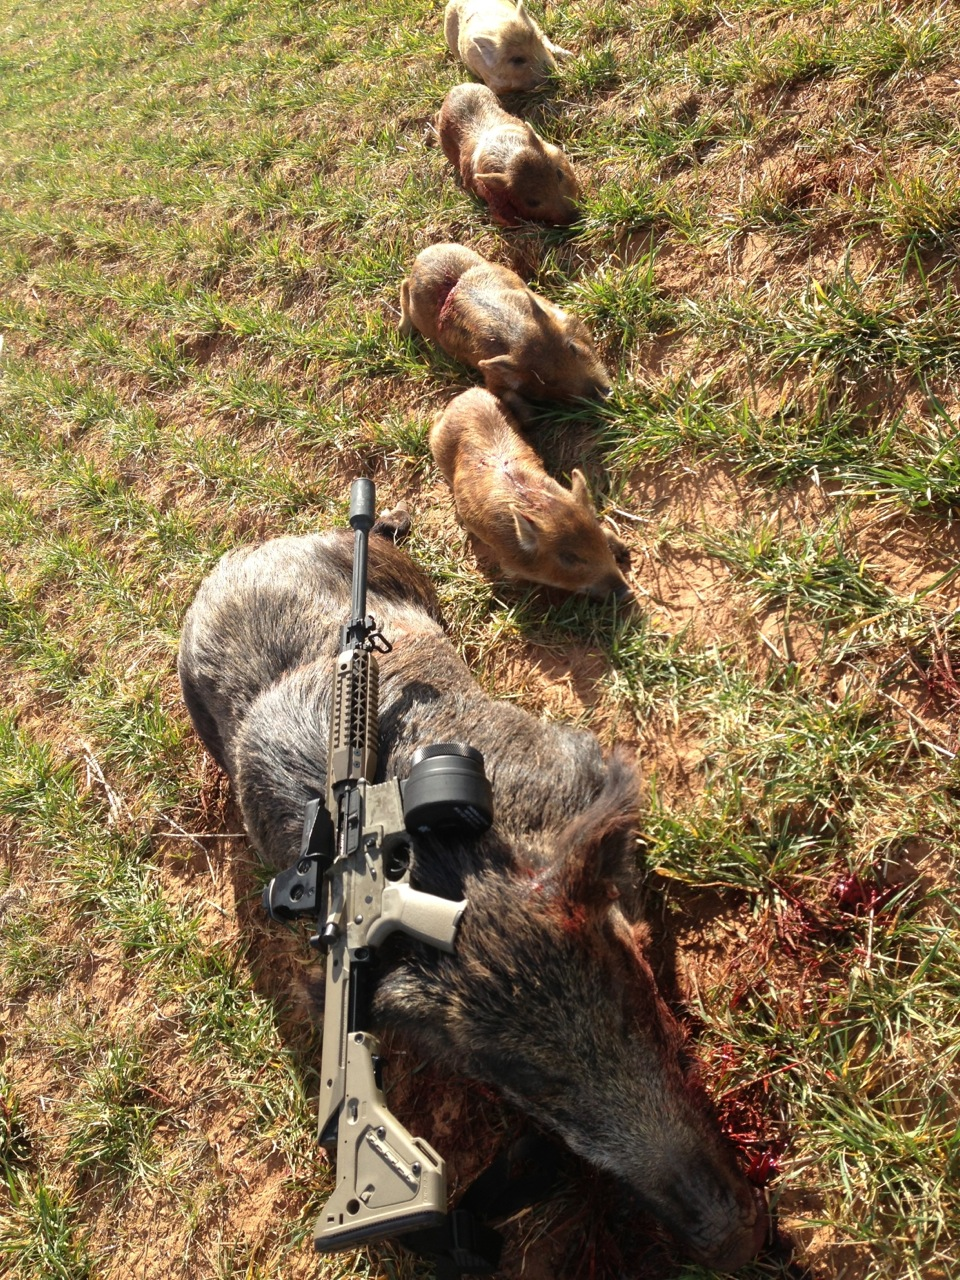 hog hunting from helicopter in texas with Helicopter Hog Hunt Slow Mo Kill Shots Video on 39979056 additionally Wild Hog Problem as well Helicopter Hog Hunt Slow Mo Kill Shots Video moreover Feral Hogs Root Familys Farm moreover Hipster t shirts 235383526990469597.